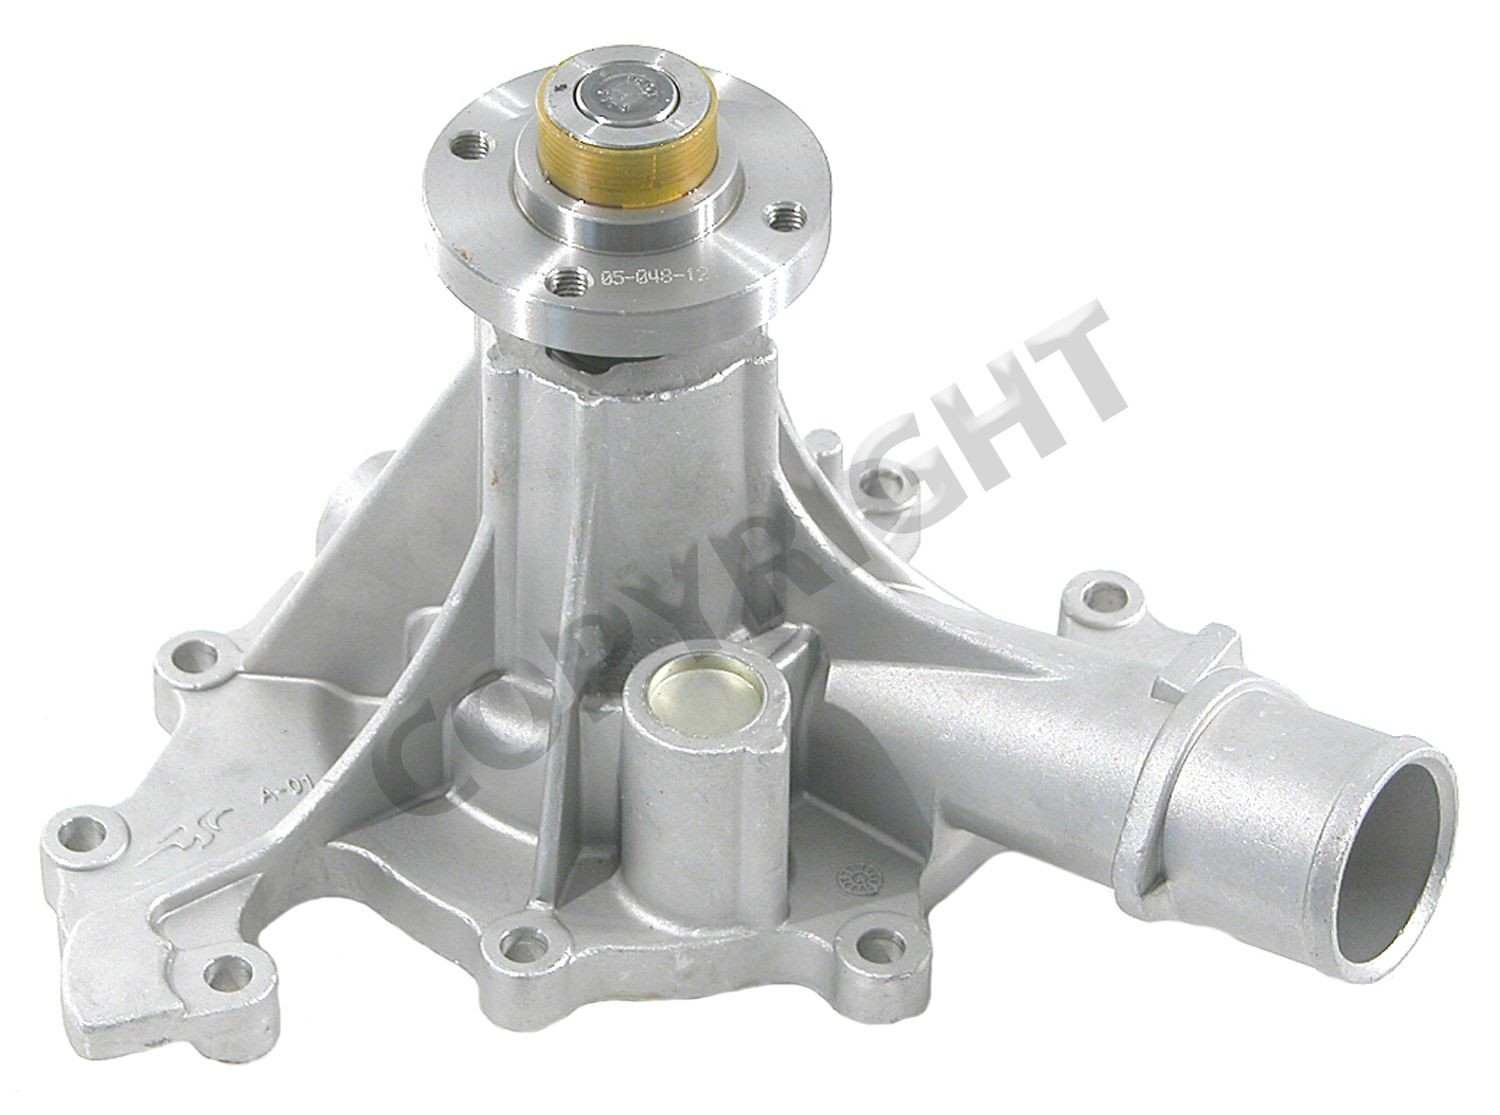 MAGNETI MARELLI OFFERED BY MOPAR - Engine Water Pump - MGM 1AMWP00032